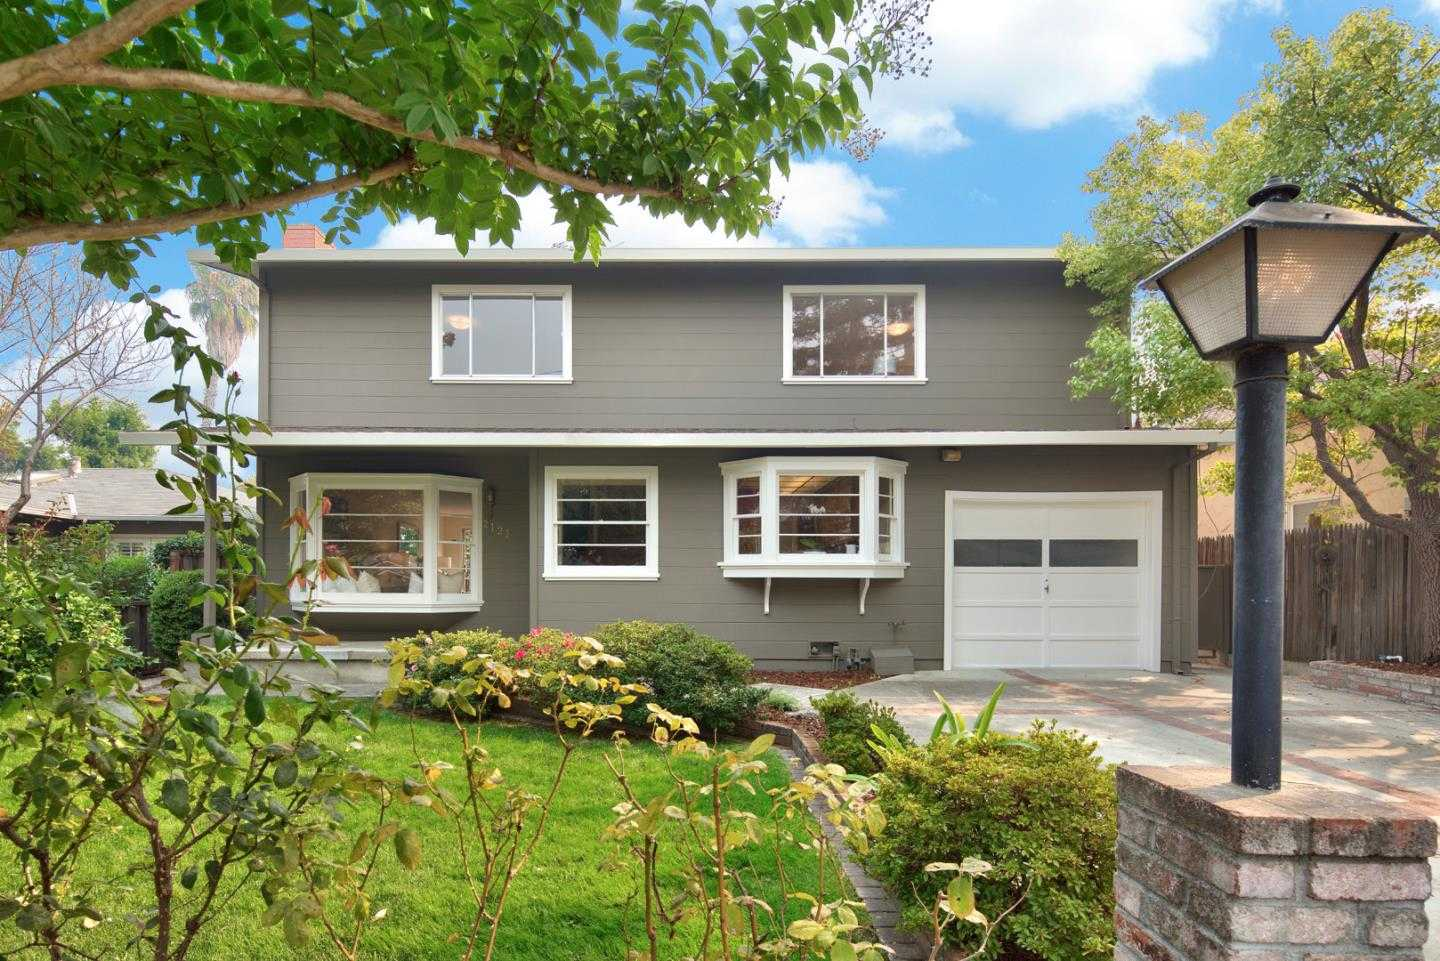 $1,995,000 - 4Br/2Ba -  for Sale in Menlo Park